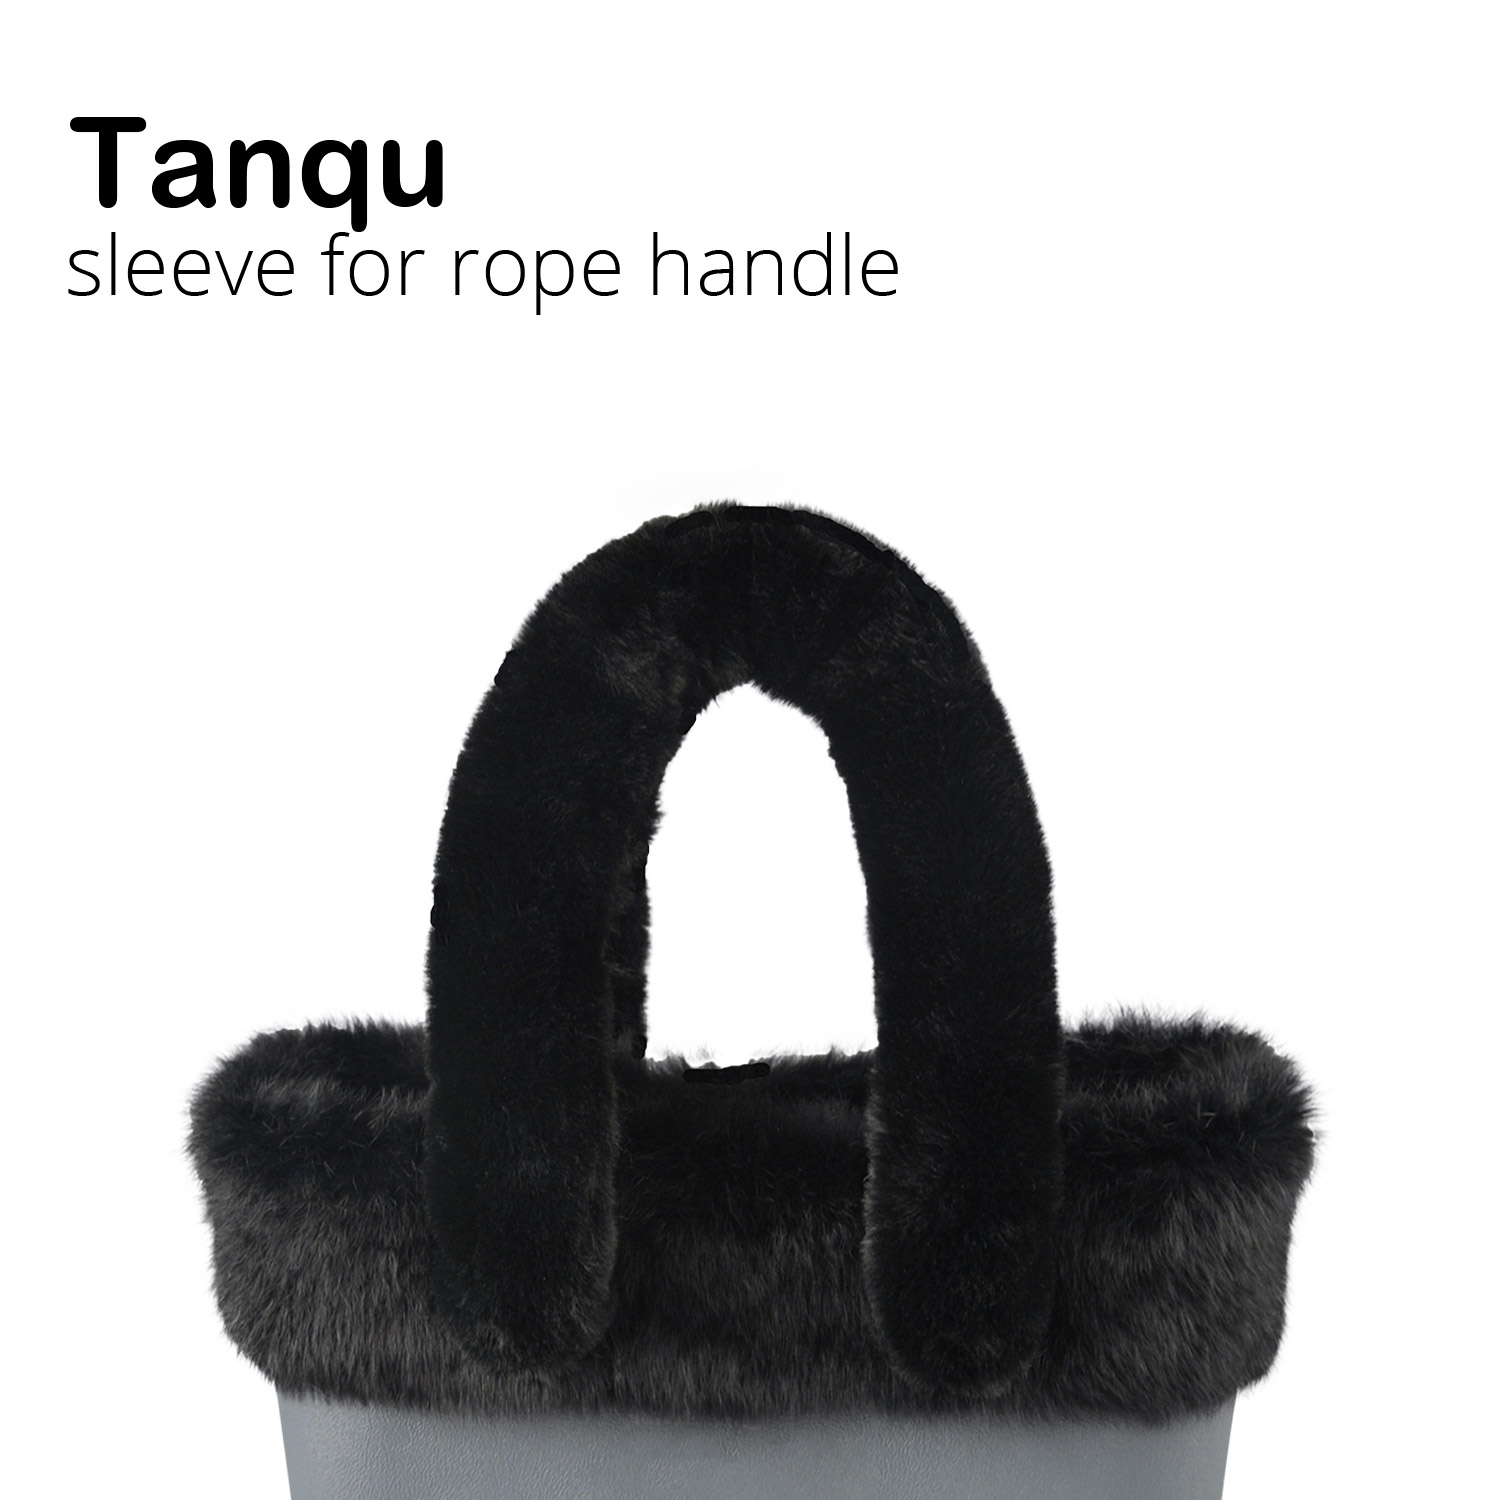 Tanqu 2018 Long Short Soft Warm Faux Fur Sleeve Cover For Rope Handle For O Bag O CHIC For EVA Obag Women Bag Shoulder Handlebag